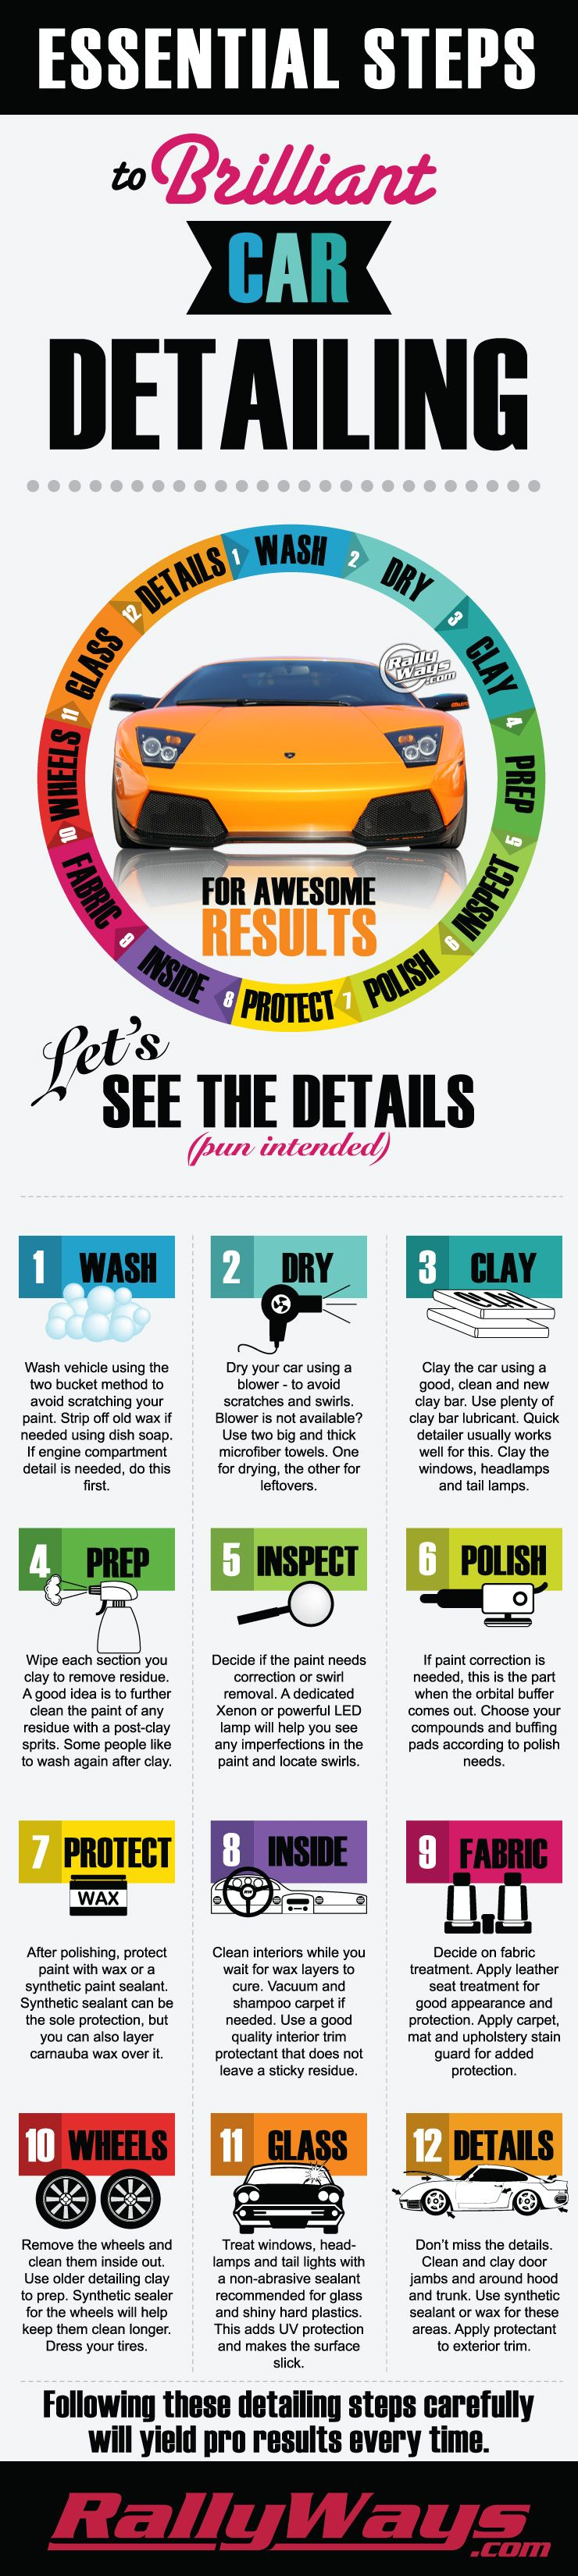 the complete professional car detailing step by step process infographic this infographic. Black Bedroom Furniture Sets. Home Design Ideas